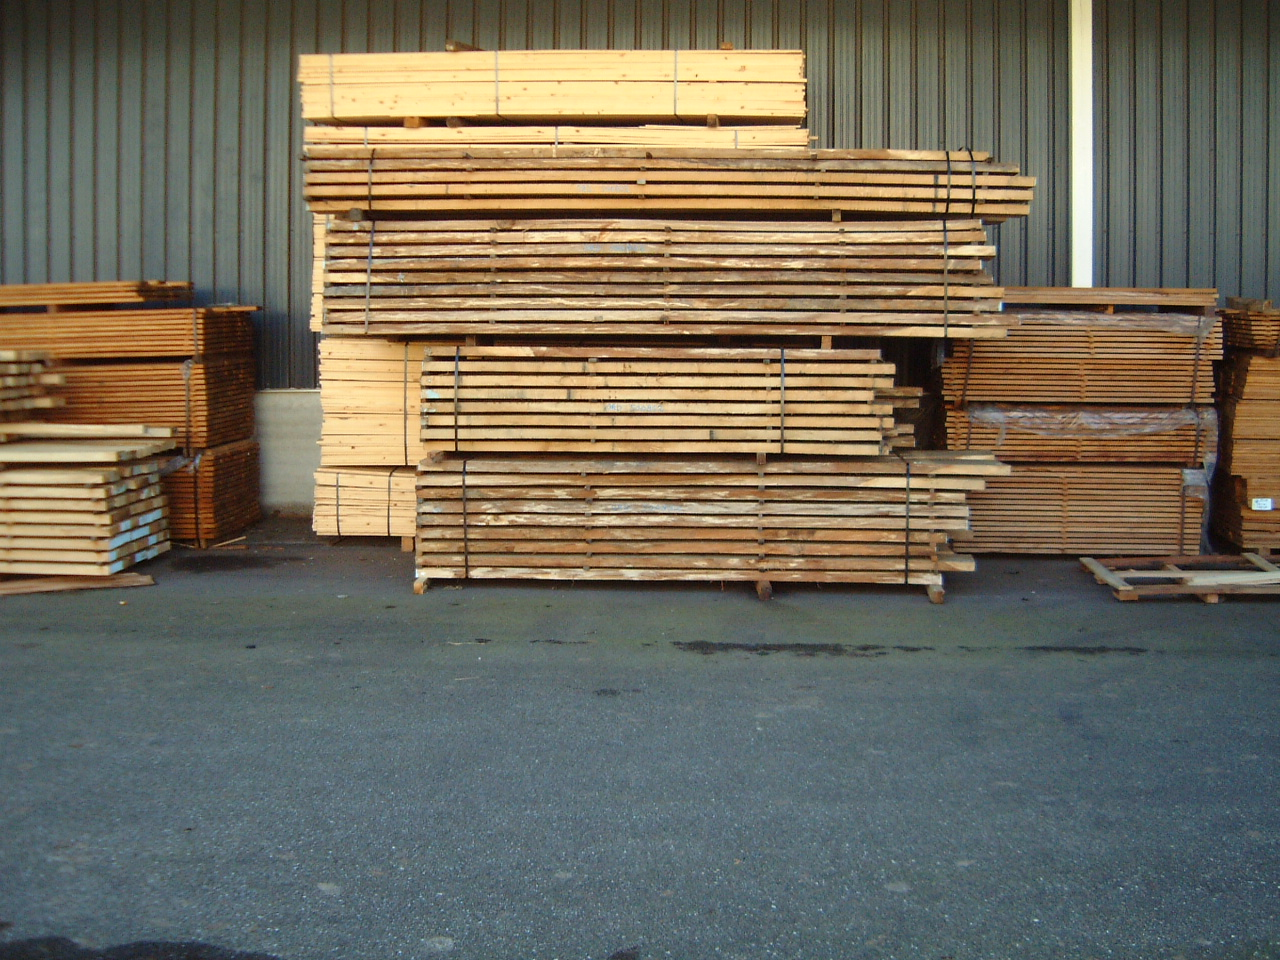 maartent wood planks stack timber